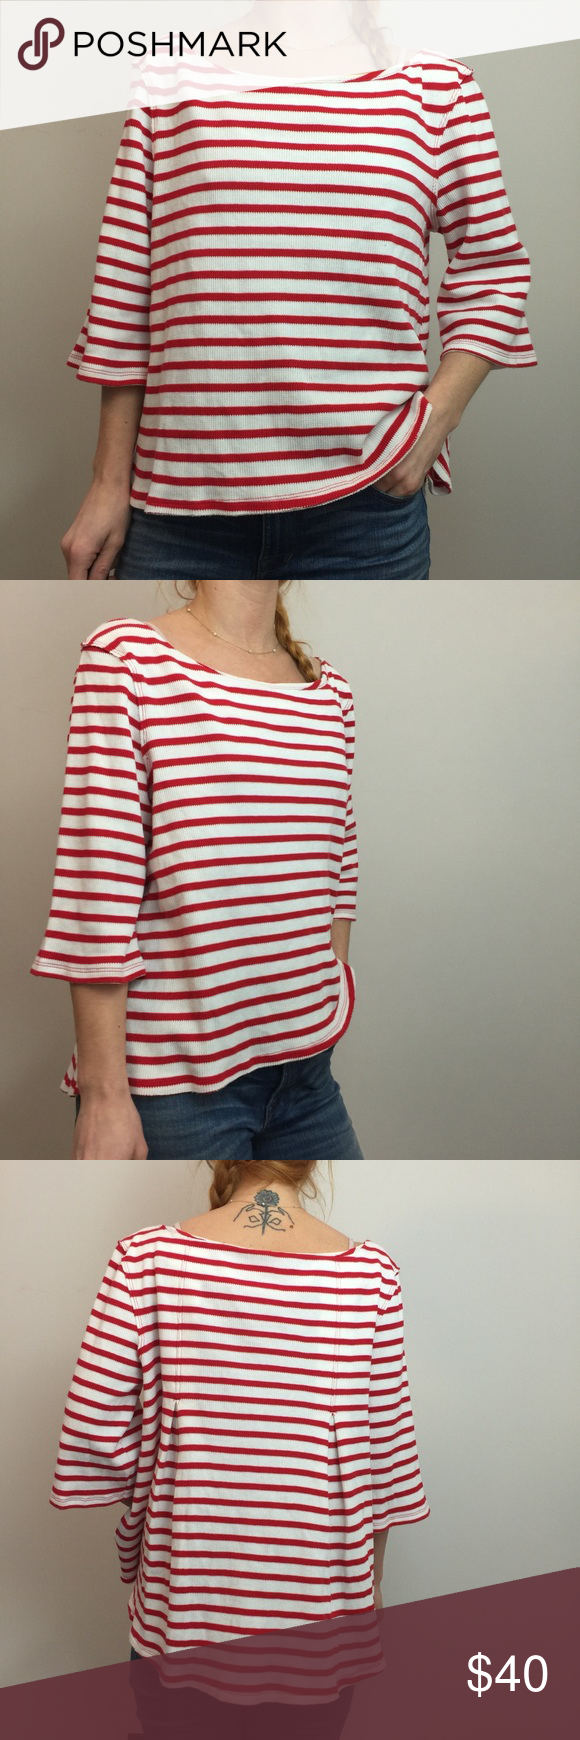 We The Free Red White Striped Thermal Top Clothes Design Red And White Stripes Fashion Design